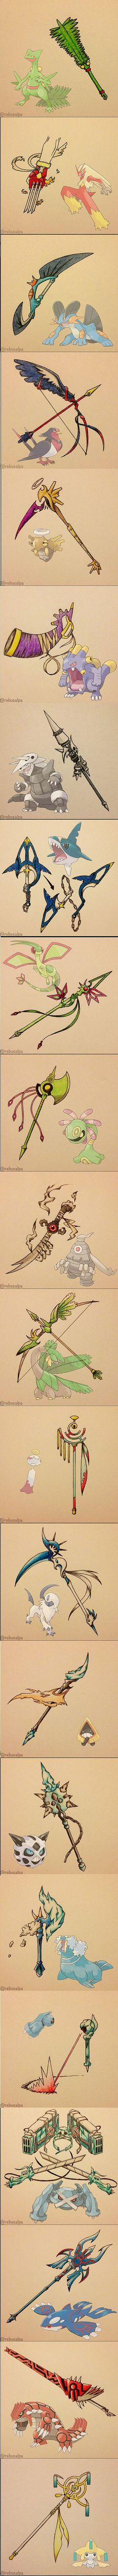 Various Pokemon as cool-ass weapons! Wish I could design stuff like these for GateKeeper! TwT I'm having problems with weapon/armor creation right now, and LoL dat 3DMetaGross, tho! XD: